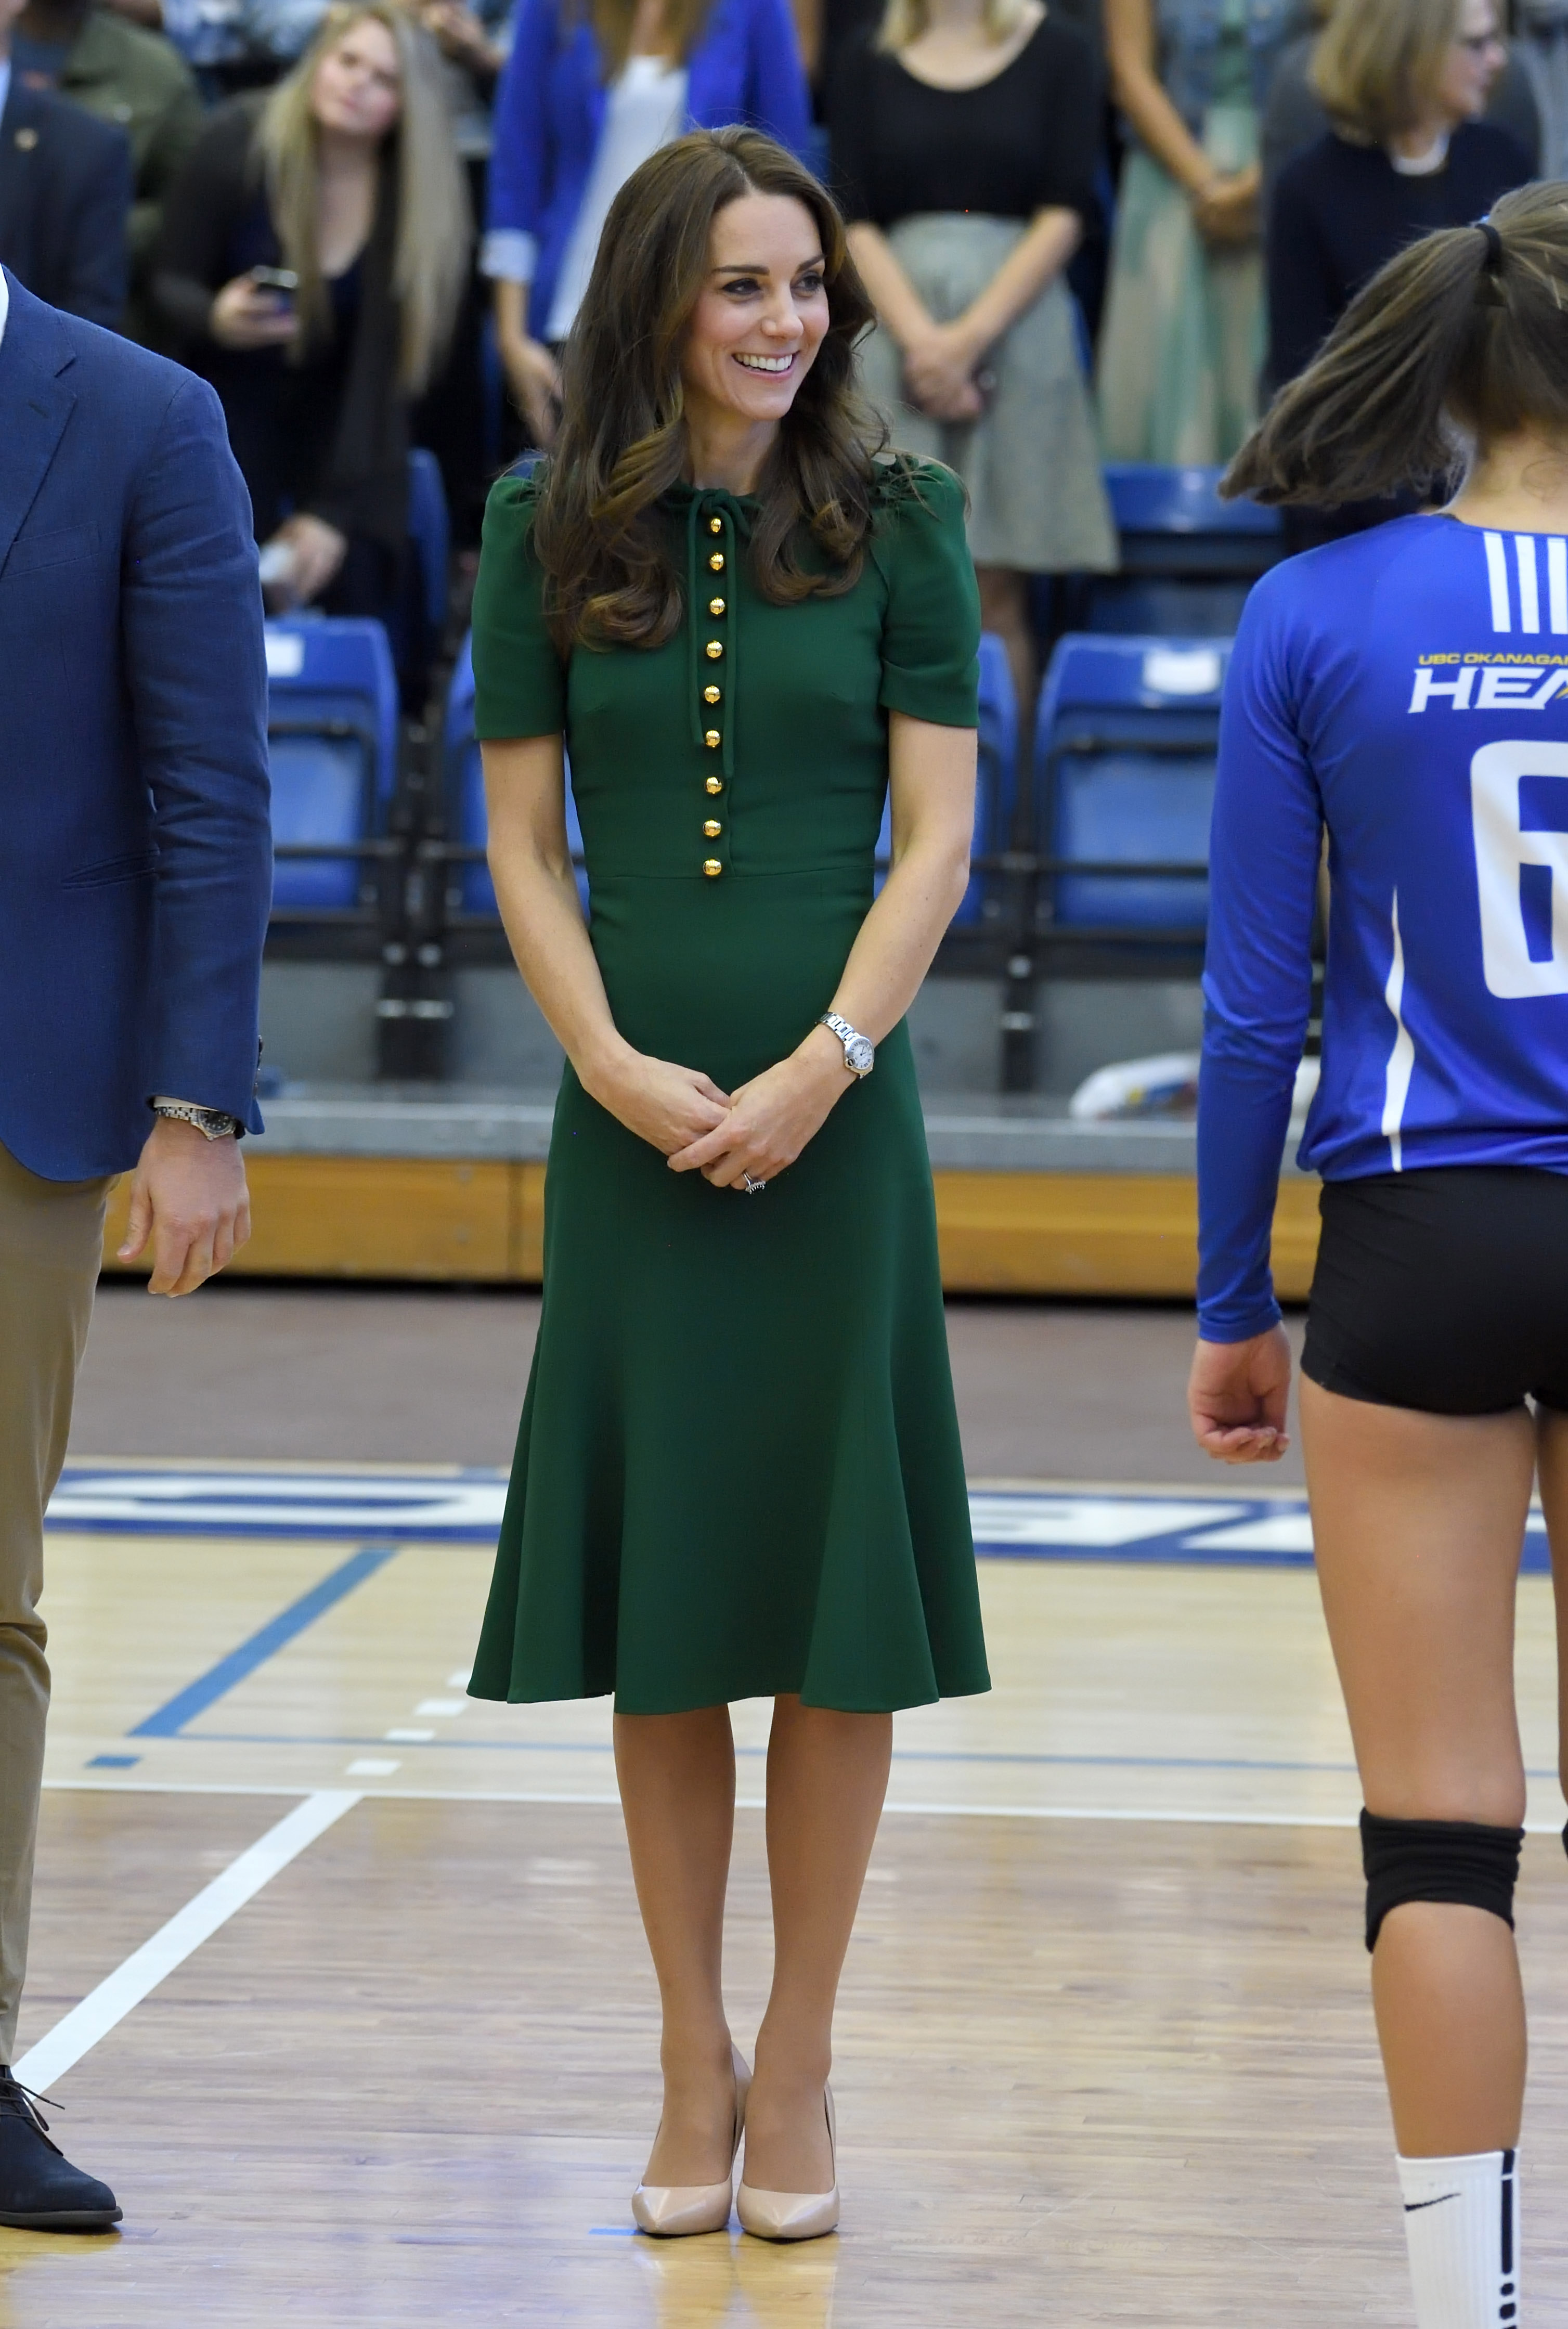 Catherine, Duchess of Cambridge, visits the University of British Columbia in Kelowna, Canada, on Sept. 27, 2016.